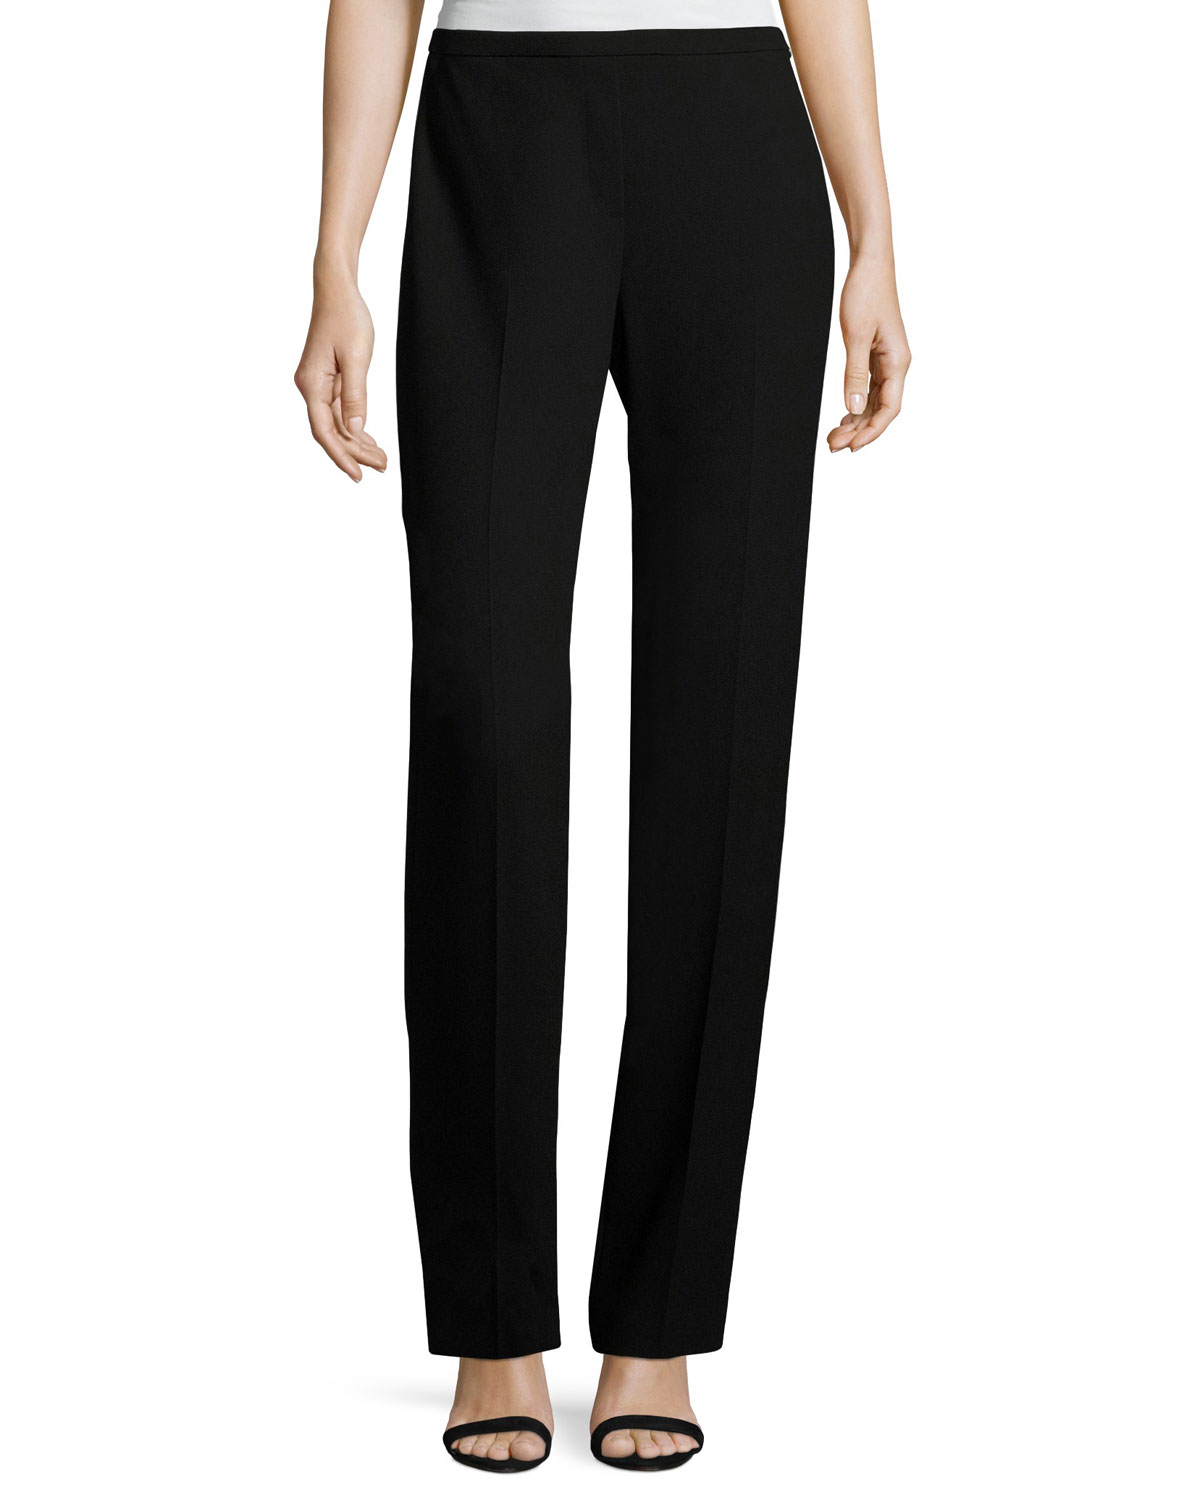 ac8ff0ed6e7ce Elie Tahari Stella Straight-Leg Stretch-Knit Pants